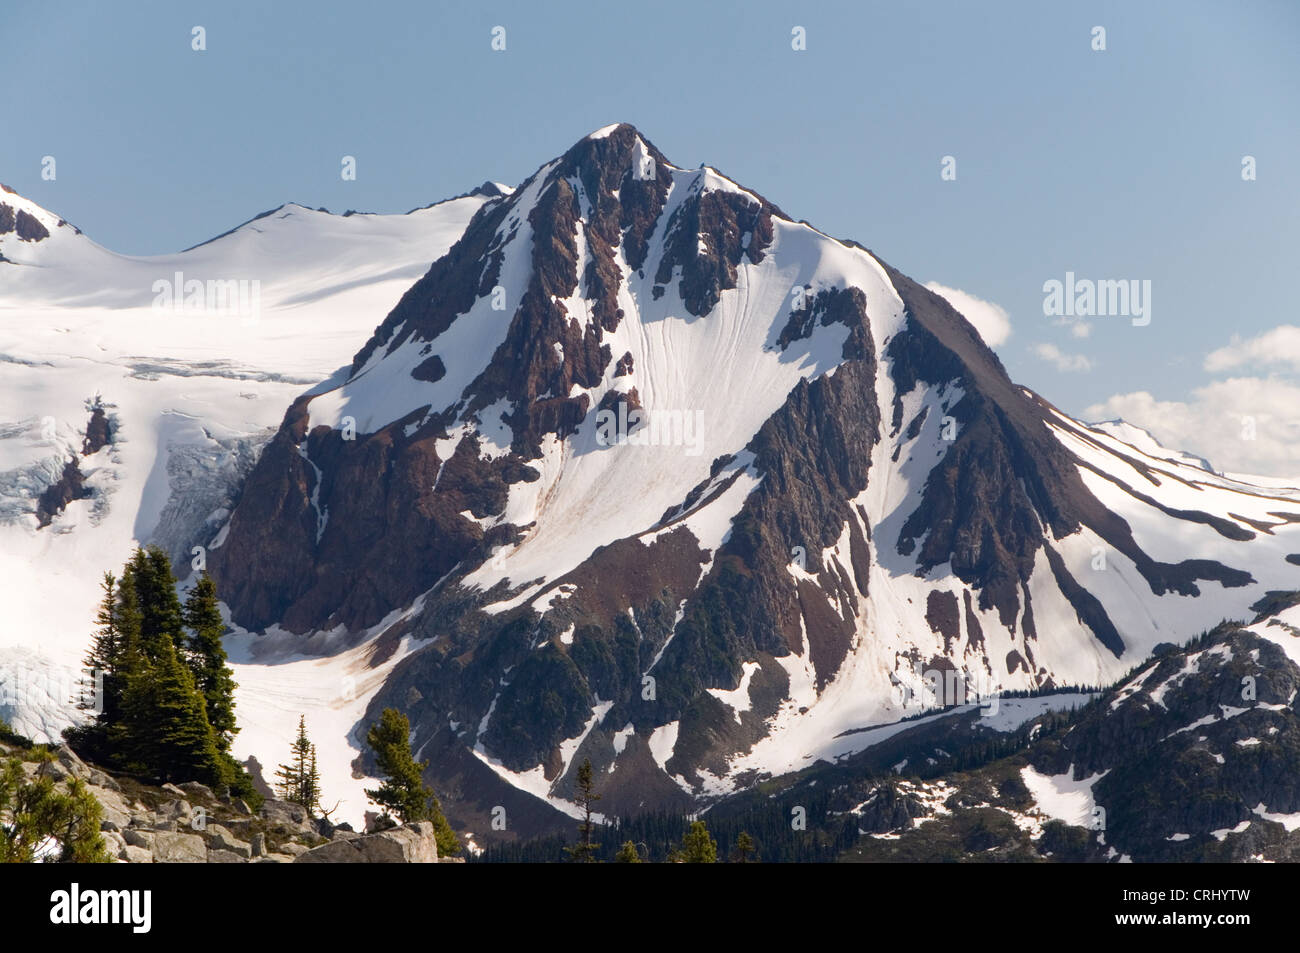 Fissile Mountain from Blackcomb Mountain, Whistler, BC, Canada. - Stock Image